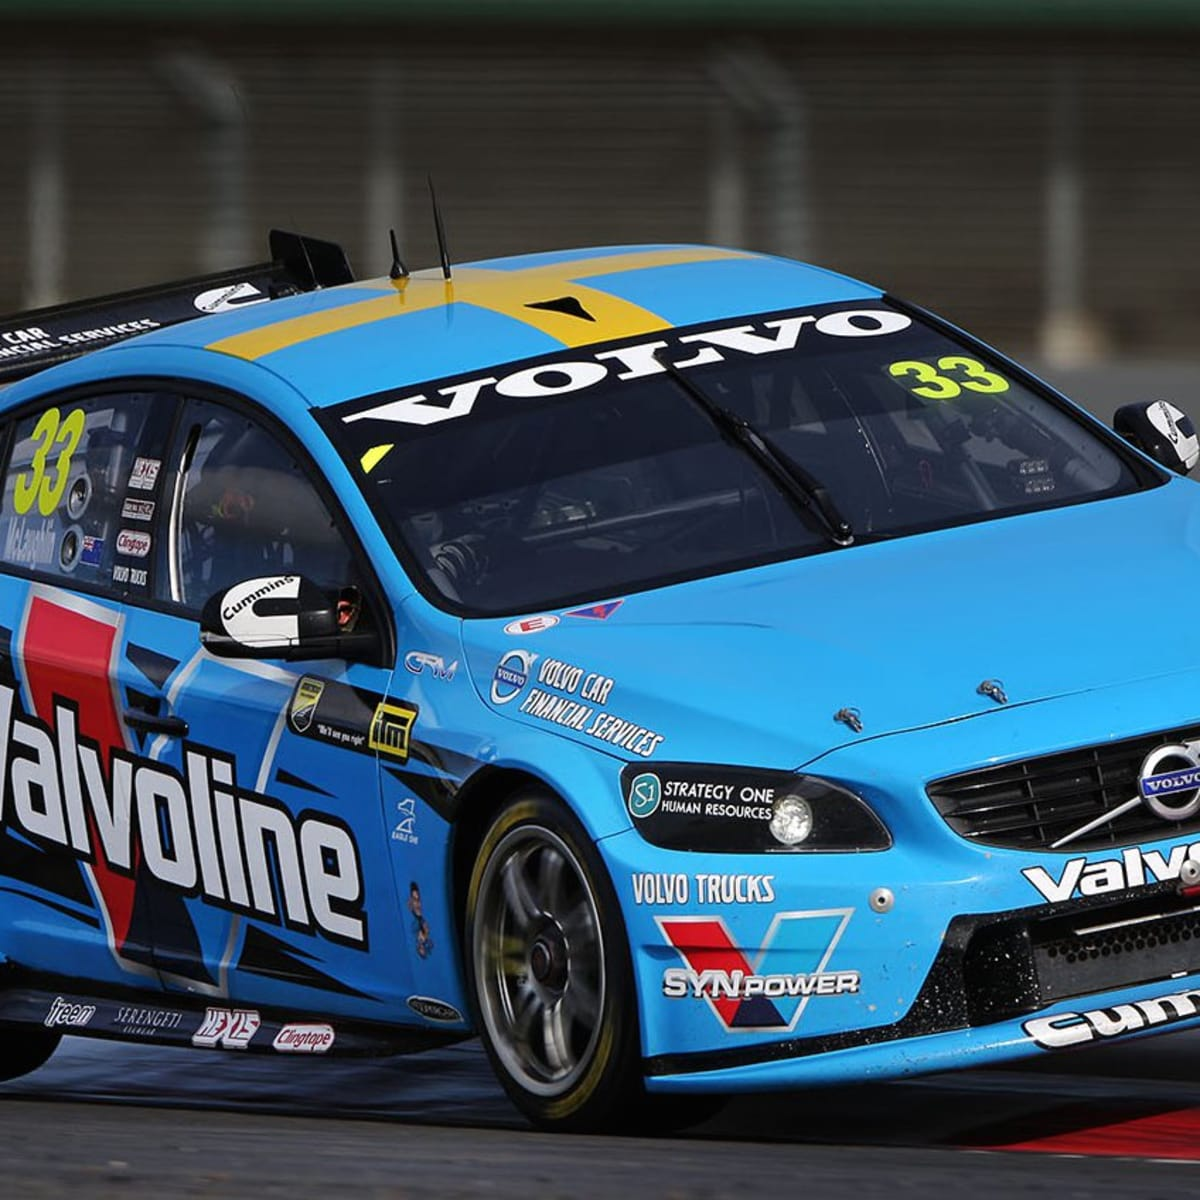 Volvo S60 Sales Boosted By V8 Supercars Entry Says Company Caradvice